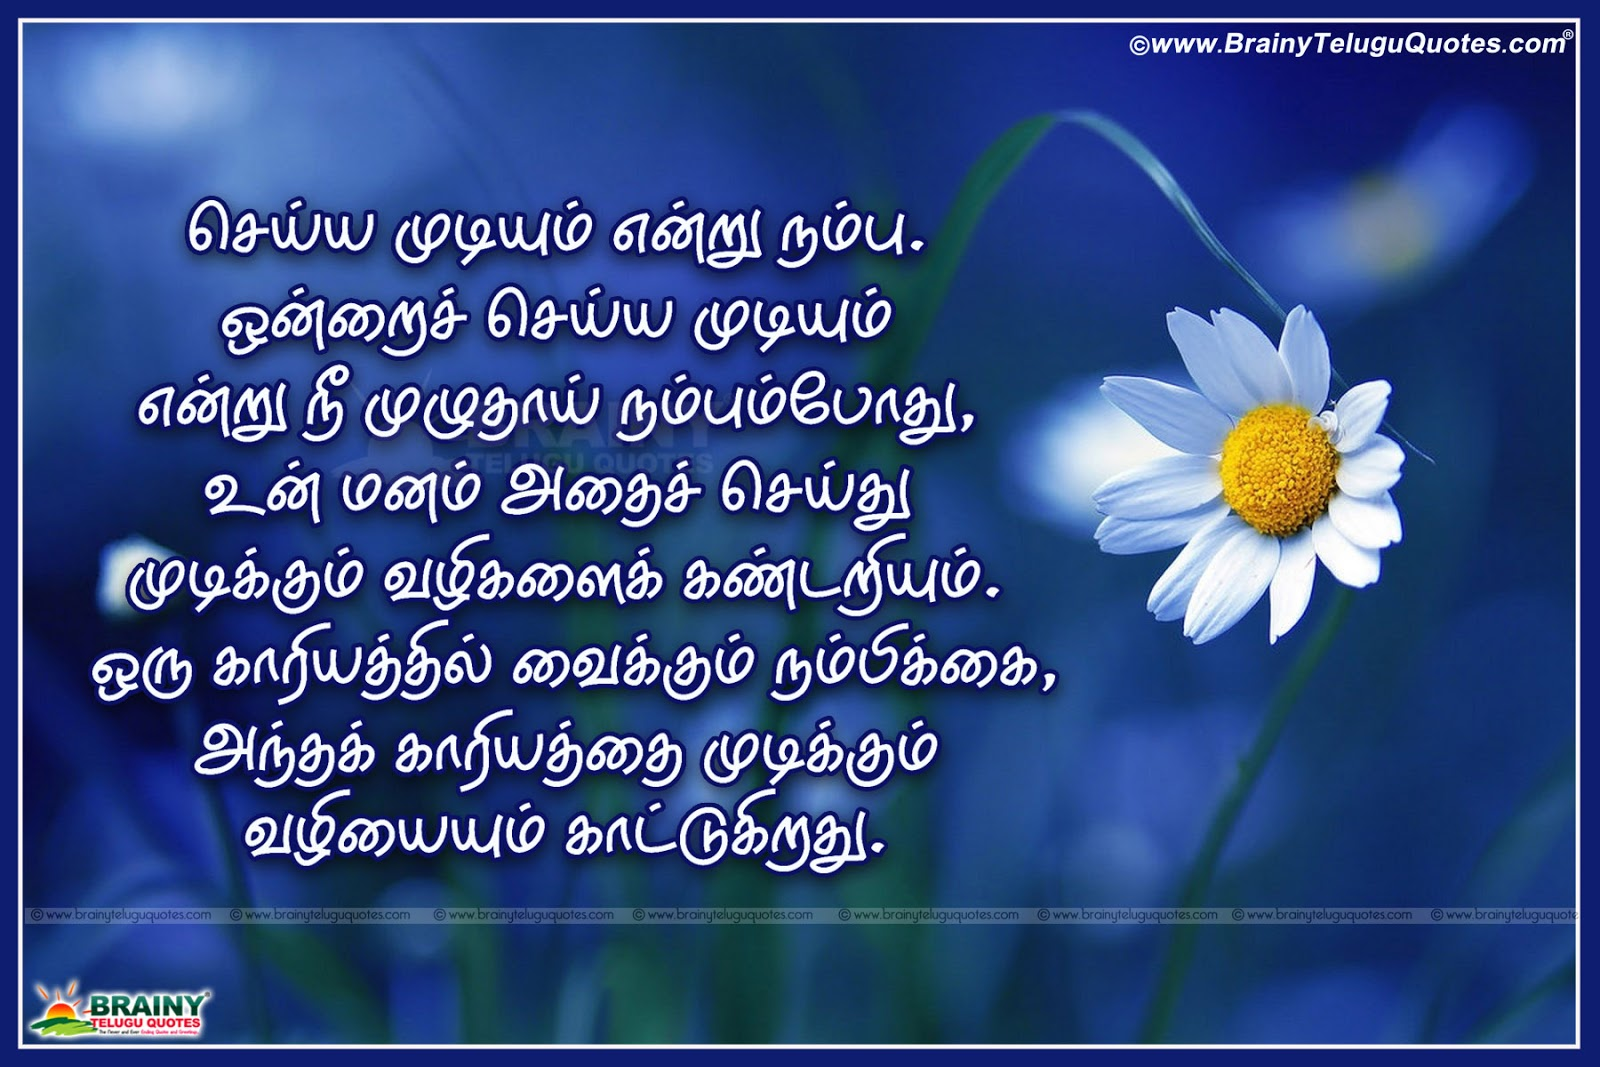 Good Night Motivational Quotes In English: Tamil Good Night Inspirational Greetings Wishes With Tamil